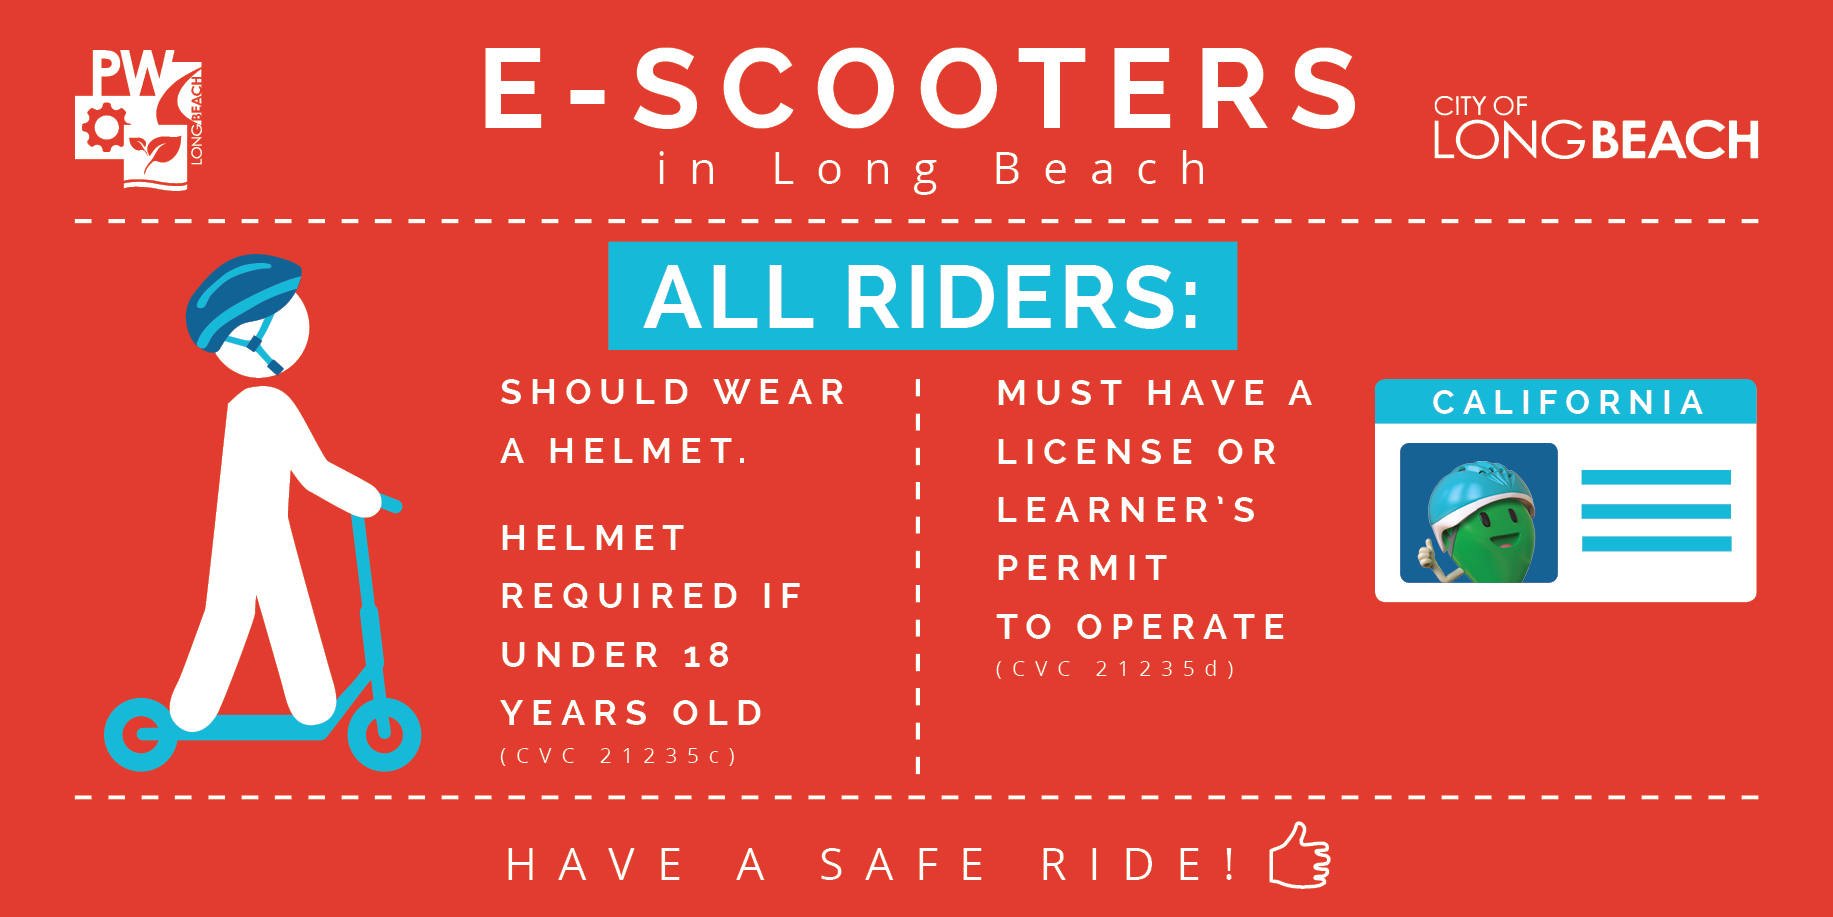 E-Scooter Share